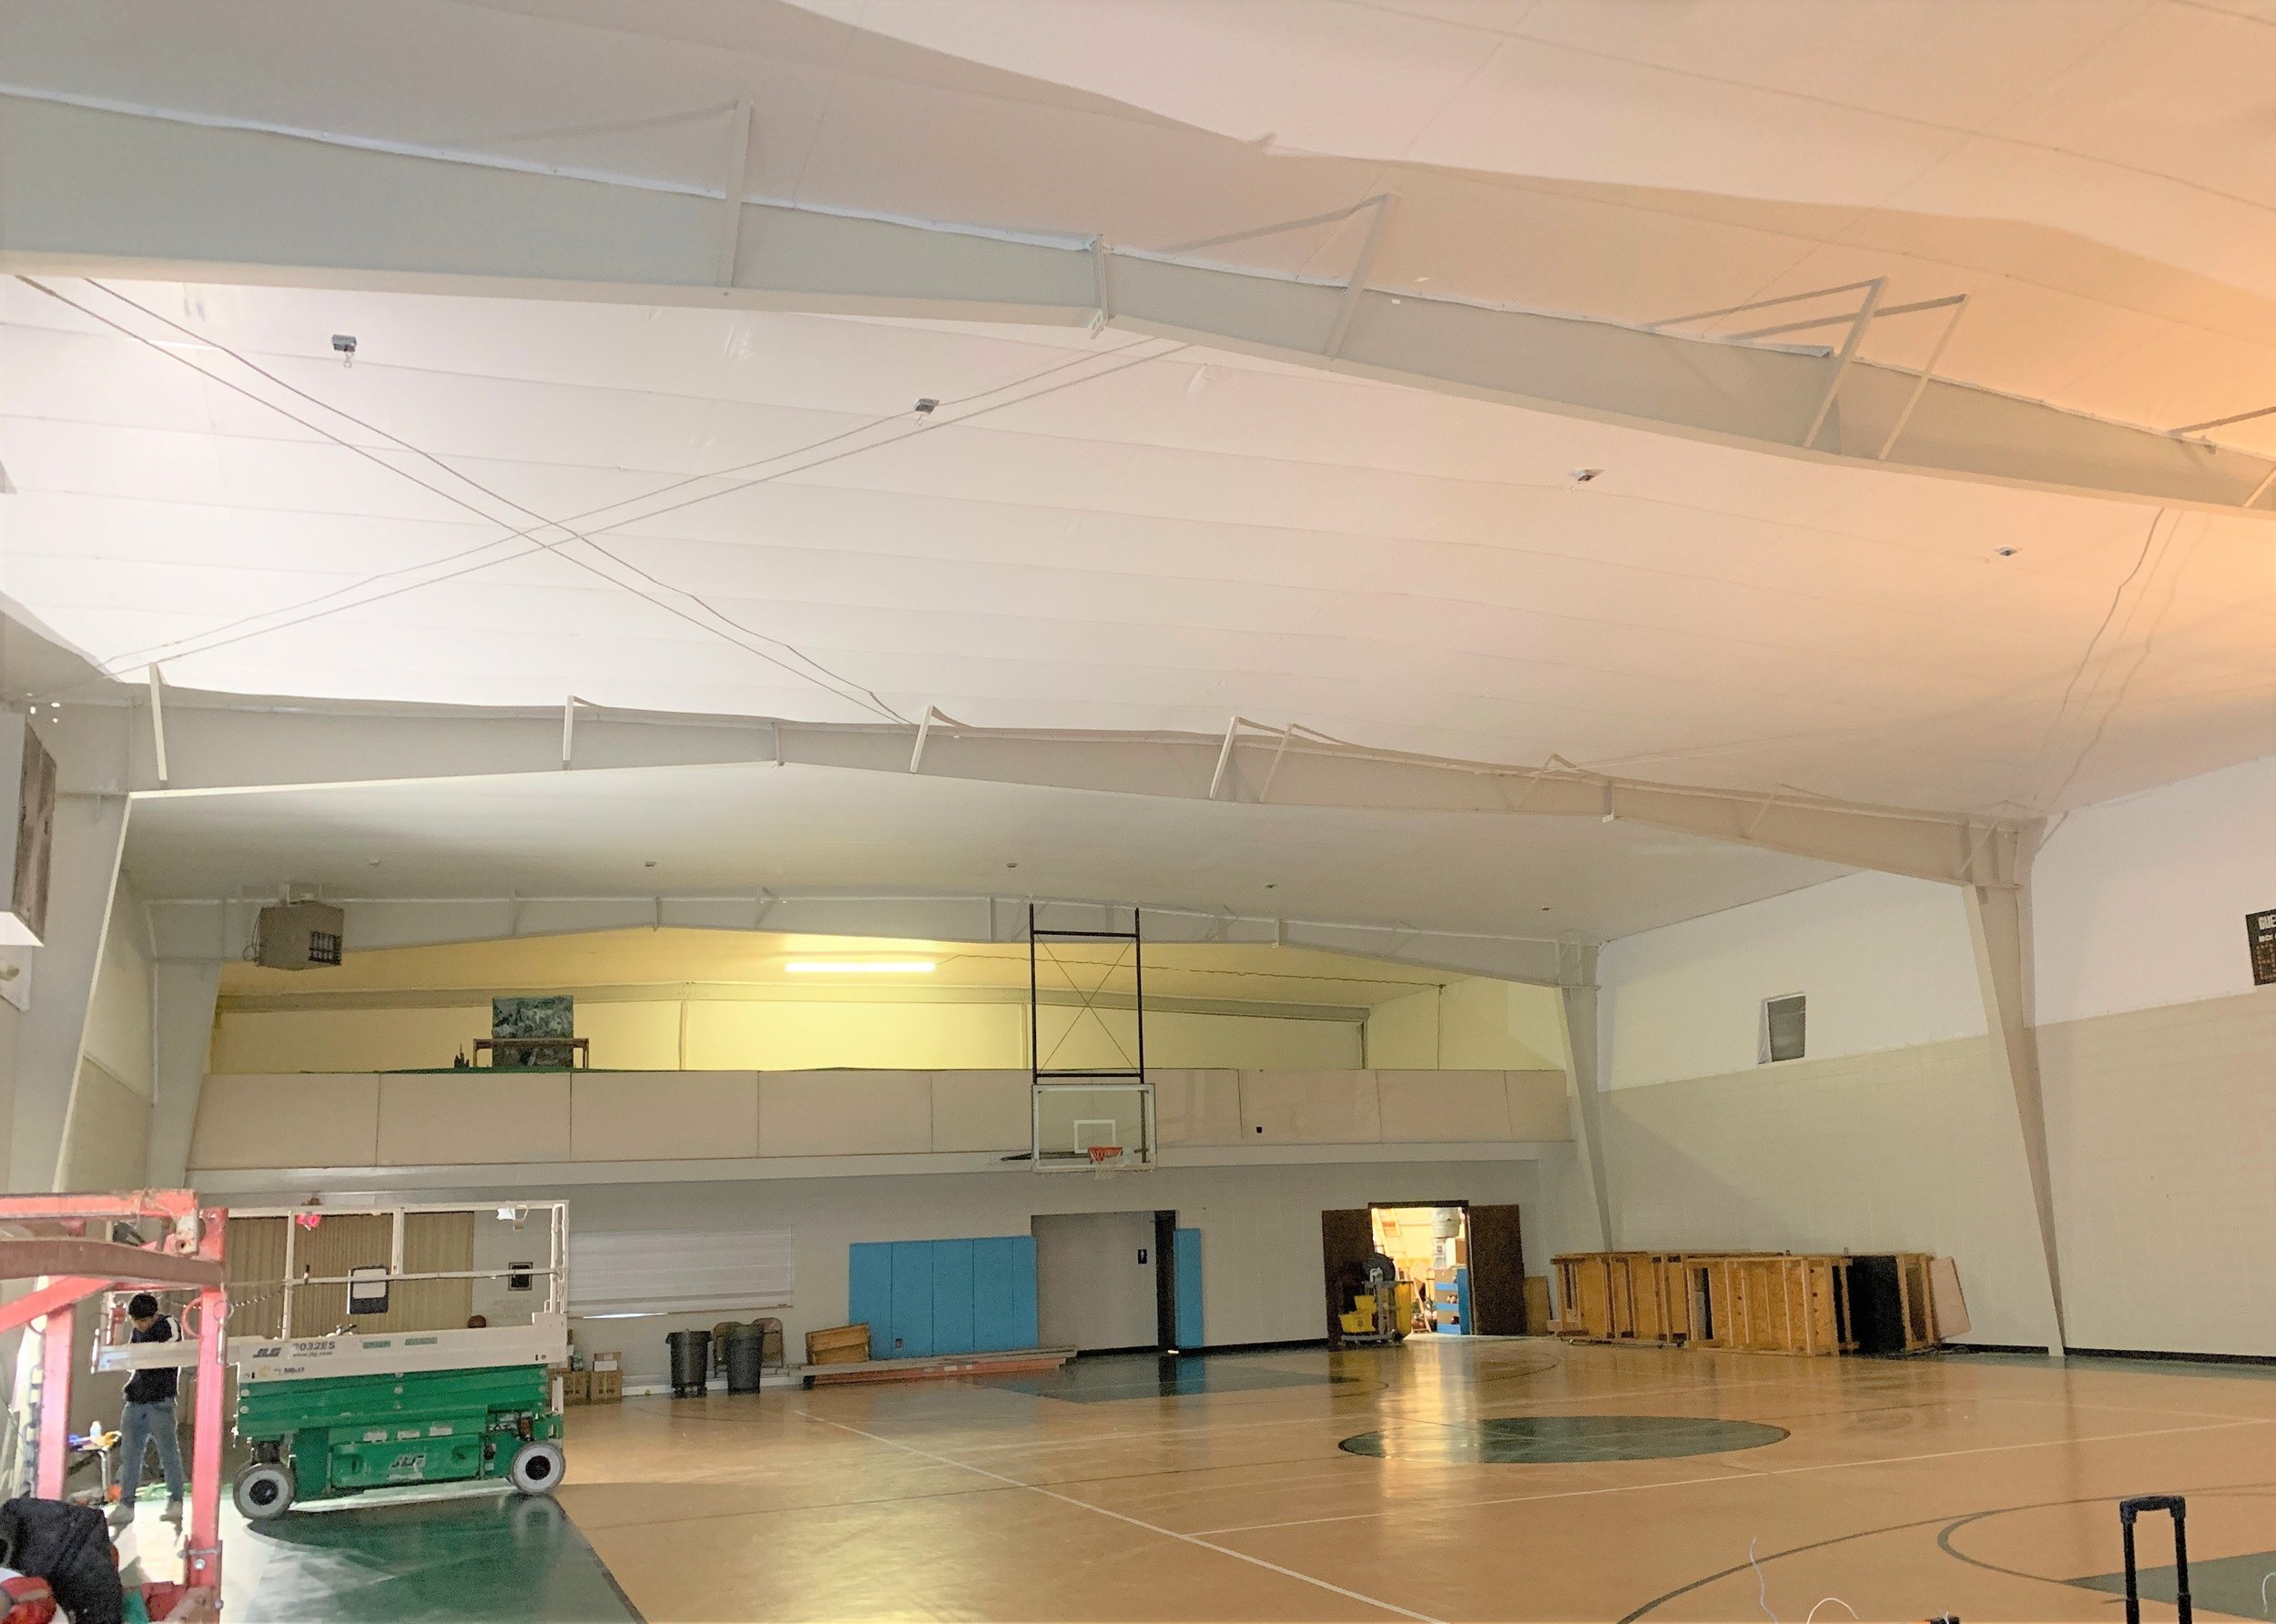 Our crew recently finished installing our reflective ceiling liner in the gymnasium area at St. Christopher's Episcopal Church in Spartanburg, S.C. Check out how gorgeous it looks even before the light fixtures are rehung! This project was a referral from a builder we had worked with on a project many years ago and we were excited to be able to assist in making this gym area aesthetically more beautiful.  Contact  us to partner with you on your unique project!